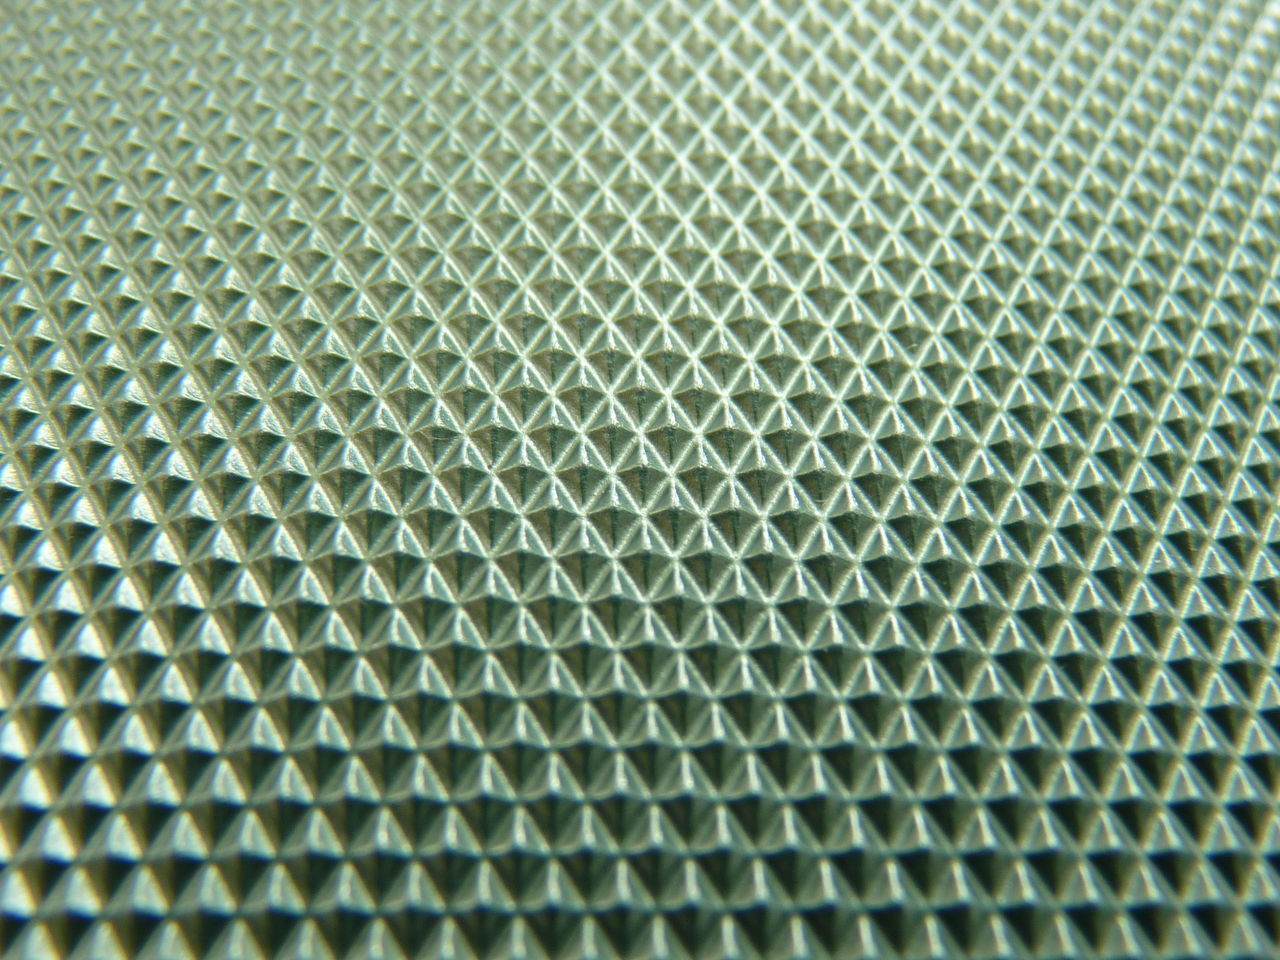 metal, backgrounds, textured, pattern, abstract, chrome, grid, silver colored, steel, silver - metal, macro, aluminum, full frame, honeycomb, stainless steel, textured effect, metal grate, close-up, no people, speaker, modern, technology, indoors, industry, brushed metal, day